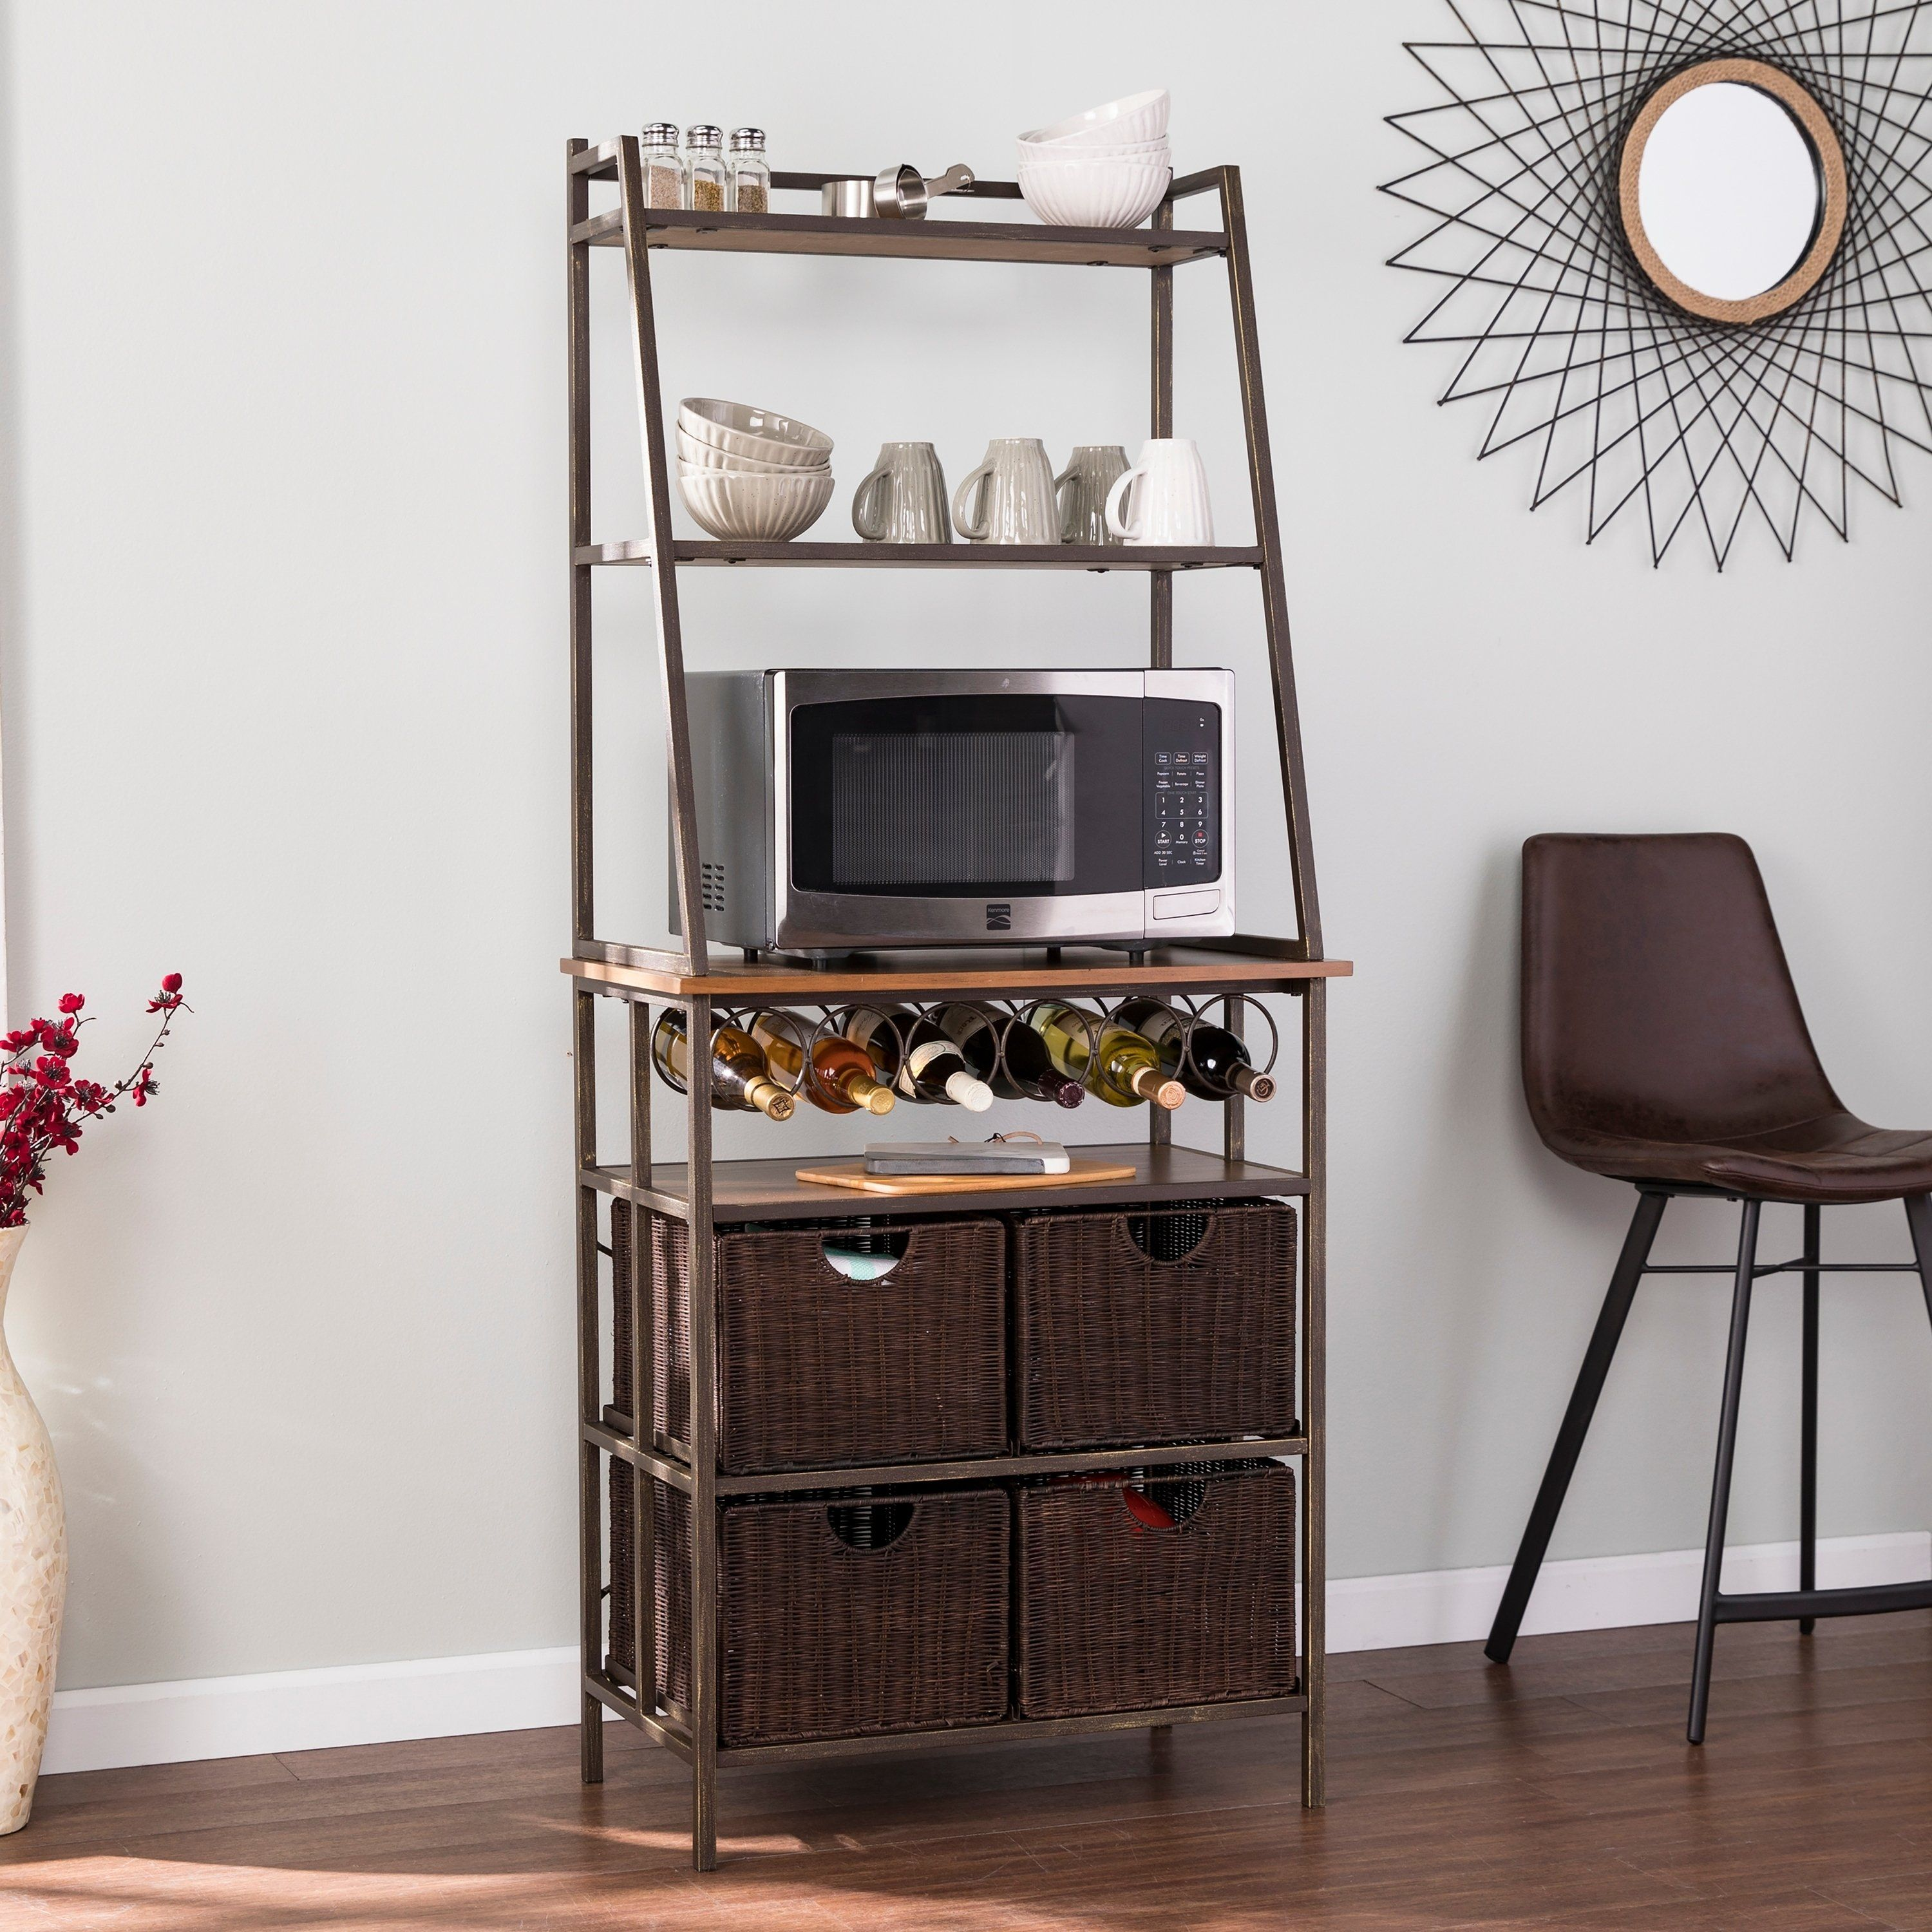 Harper Blvd Archie Metal Bakers Rack W Wine Storage And Baskets